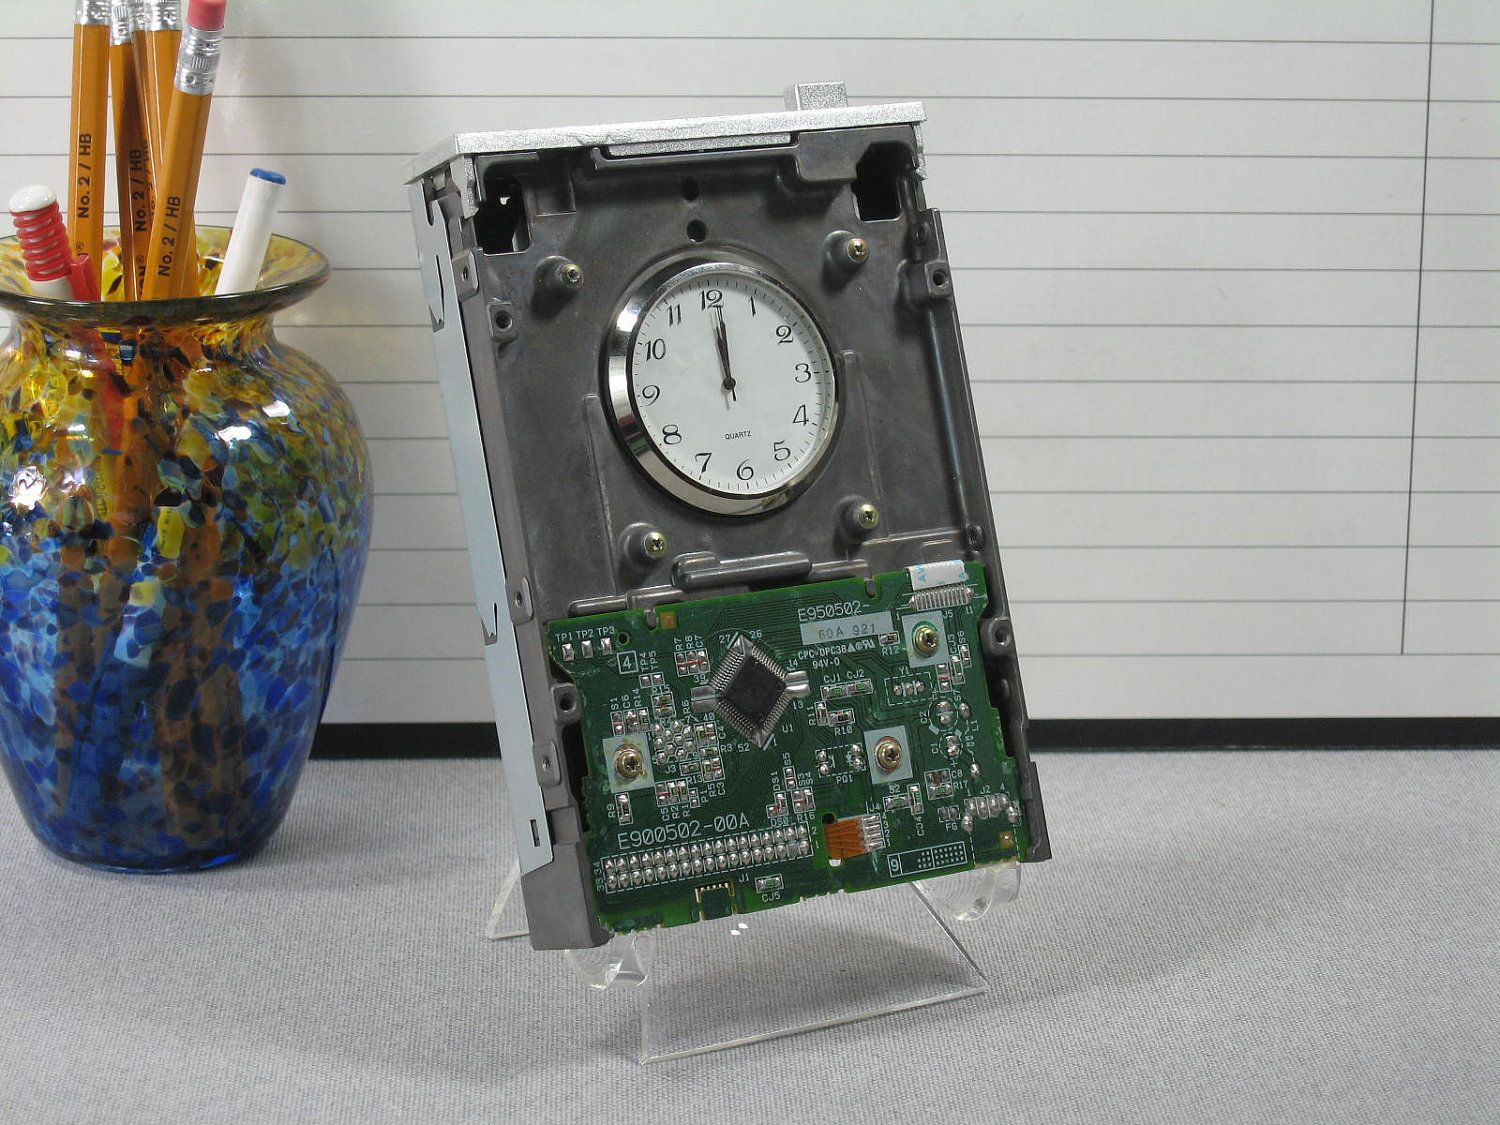 Handmade Upcycled Desk Clock Old Teac Floppy Drive Home Decor Office Pcb Sculptures Artist Upcycles Circuit Boards Into Art Clocks By Dano Via Etsy